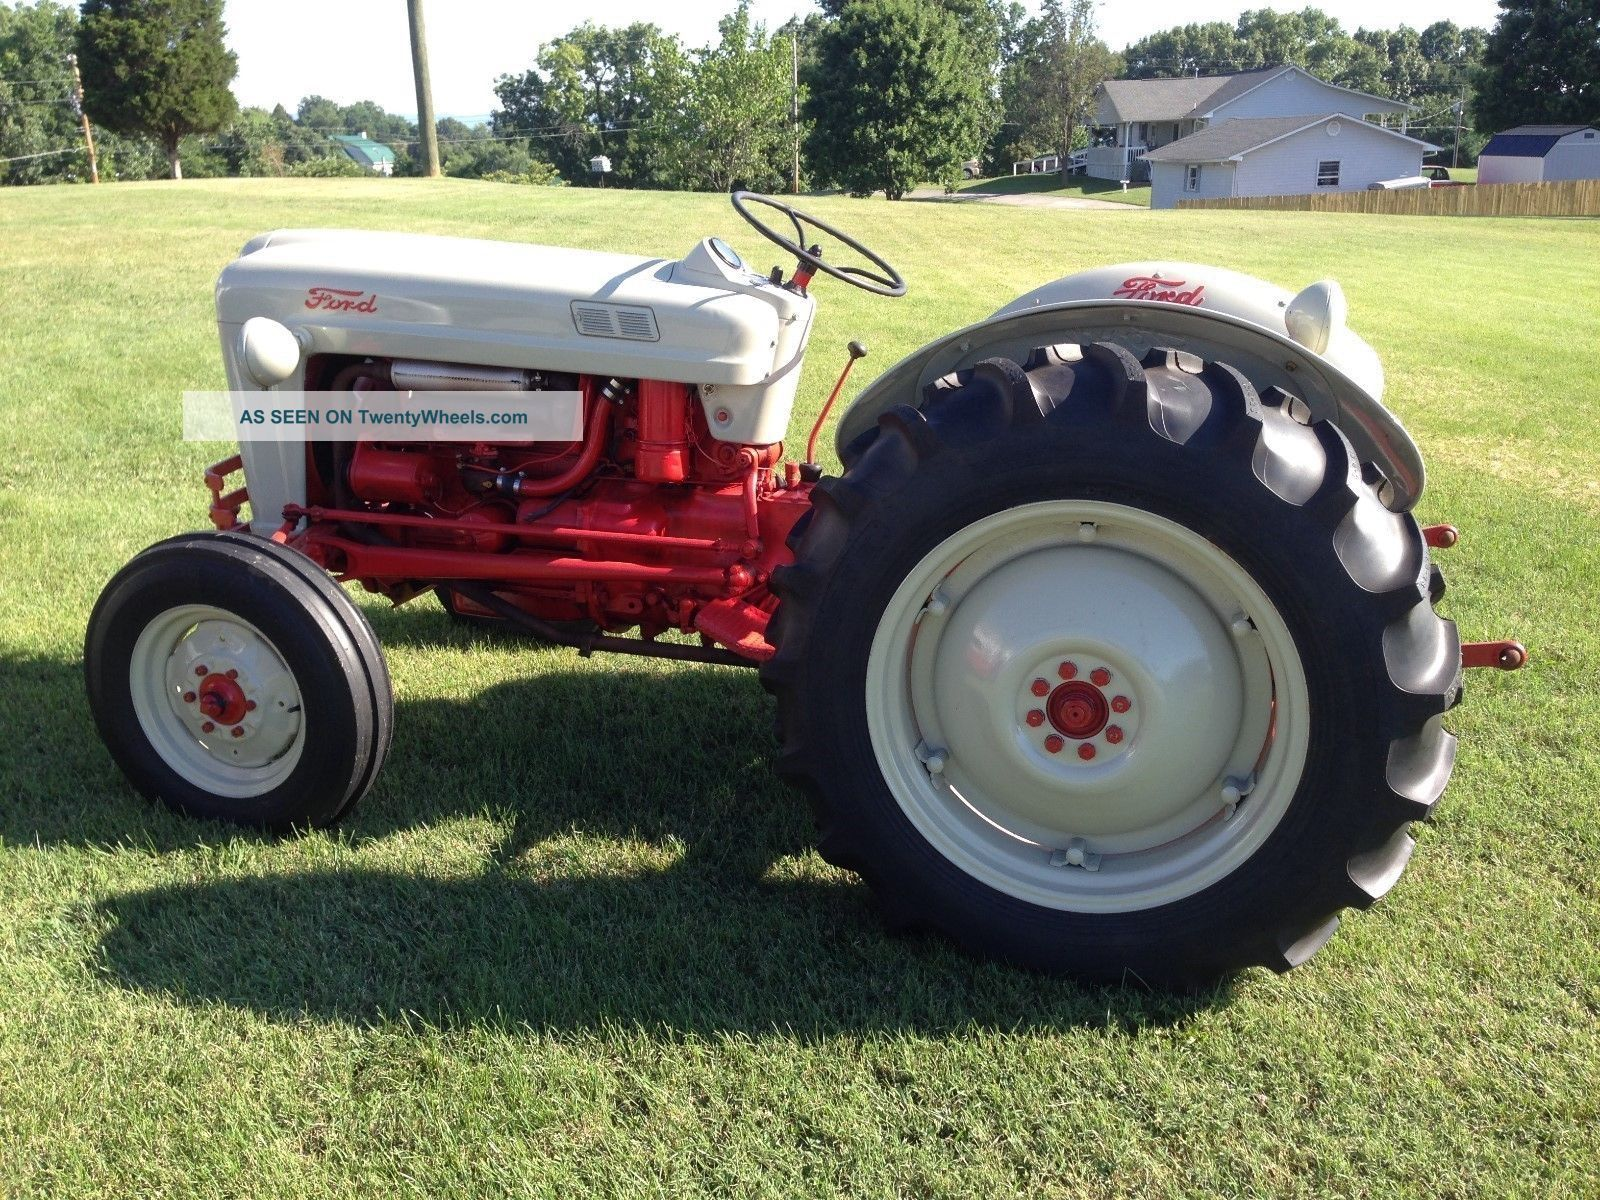 1953 ford golden jubilee tractor all antique amp vintage farm equip